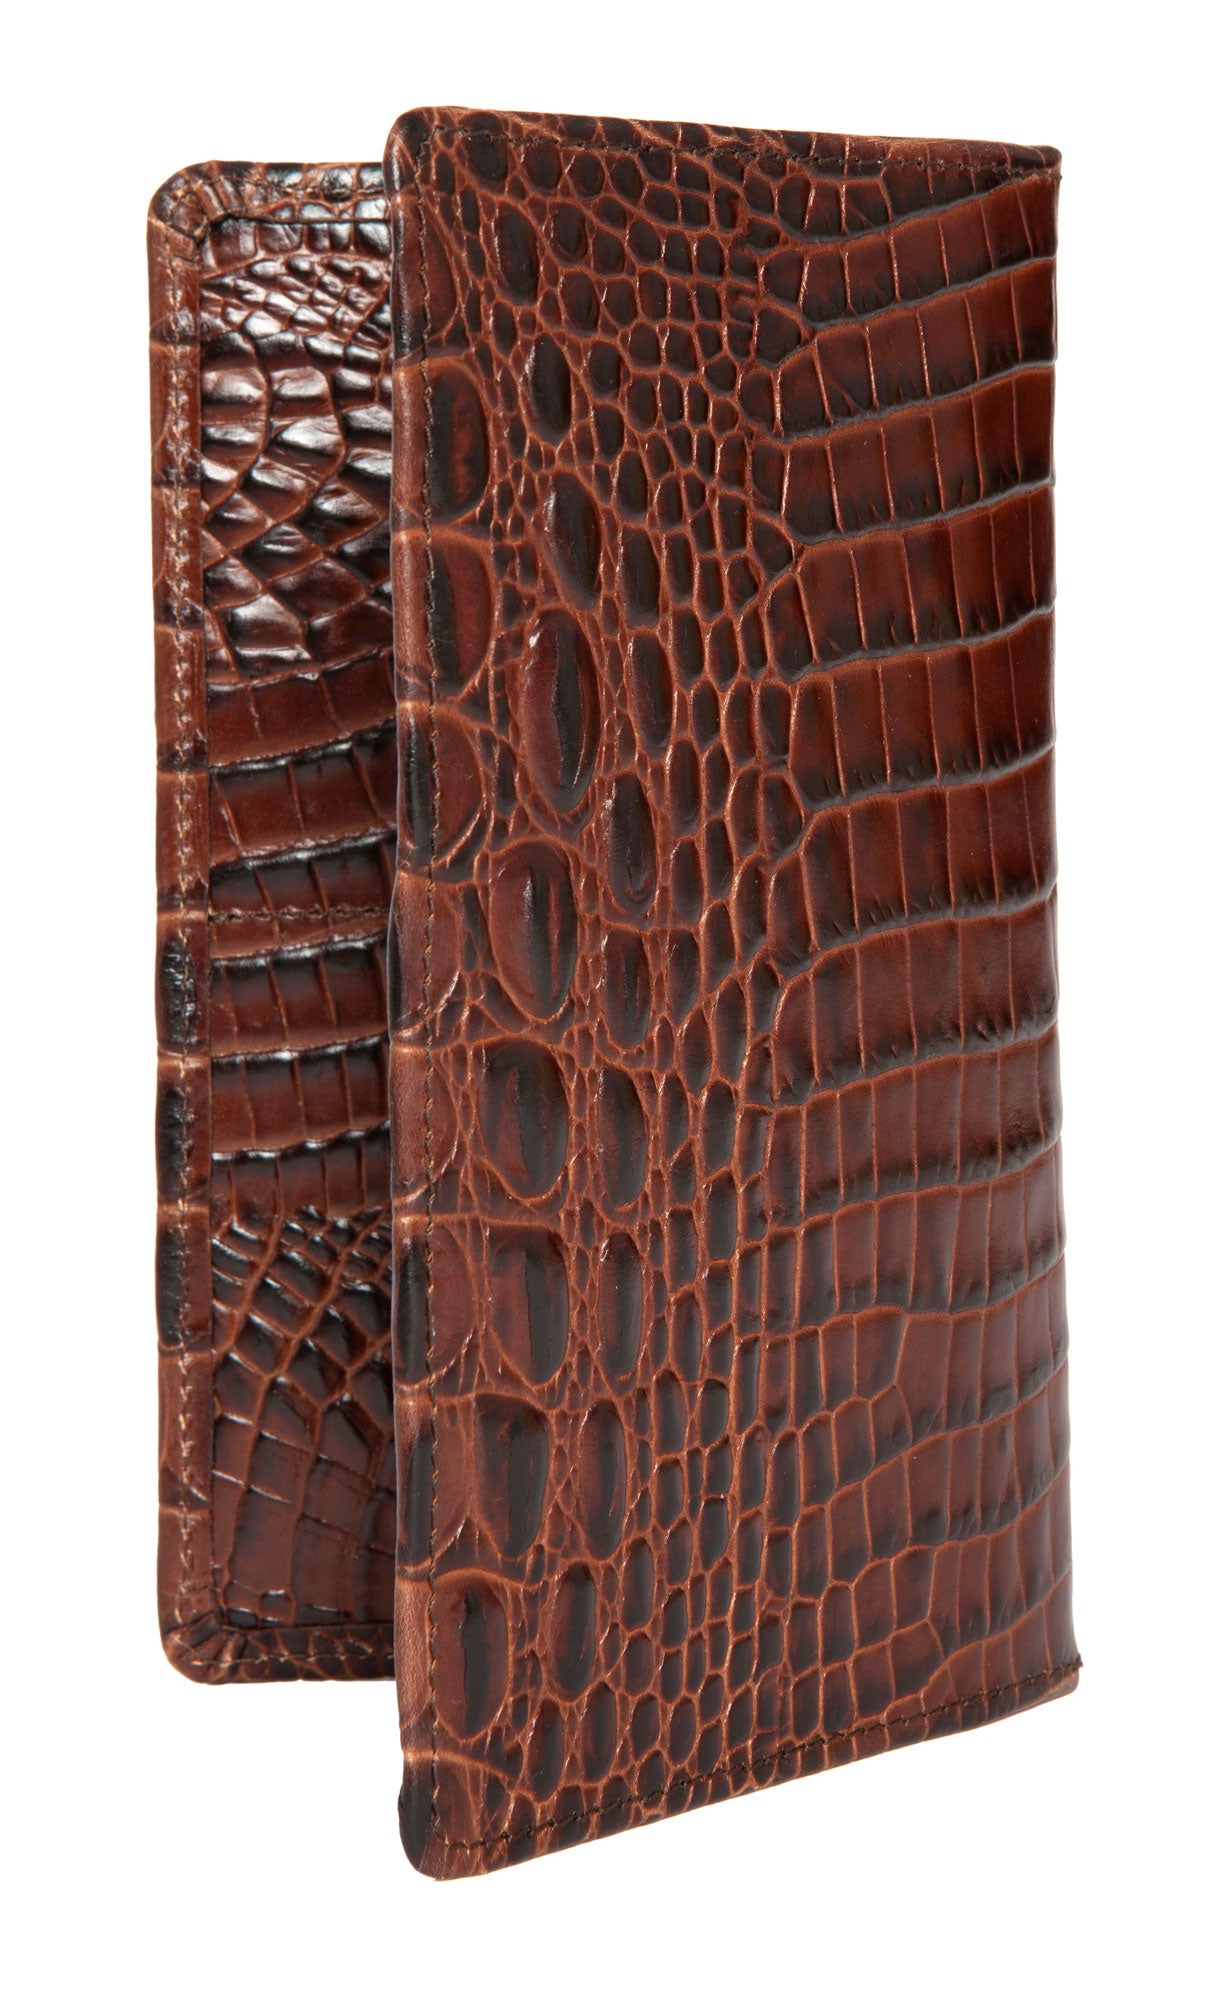 Brown mock/fake snake/crocodile-skin effect pressed tall leather 'hipster' attaché wallet made and designed in England exclusively for Regent.